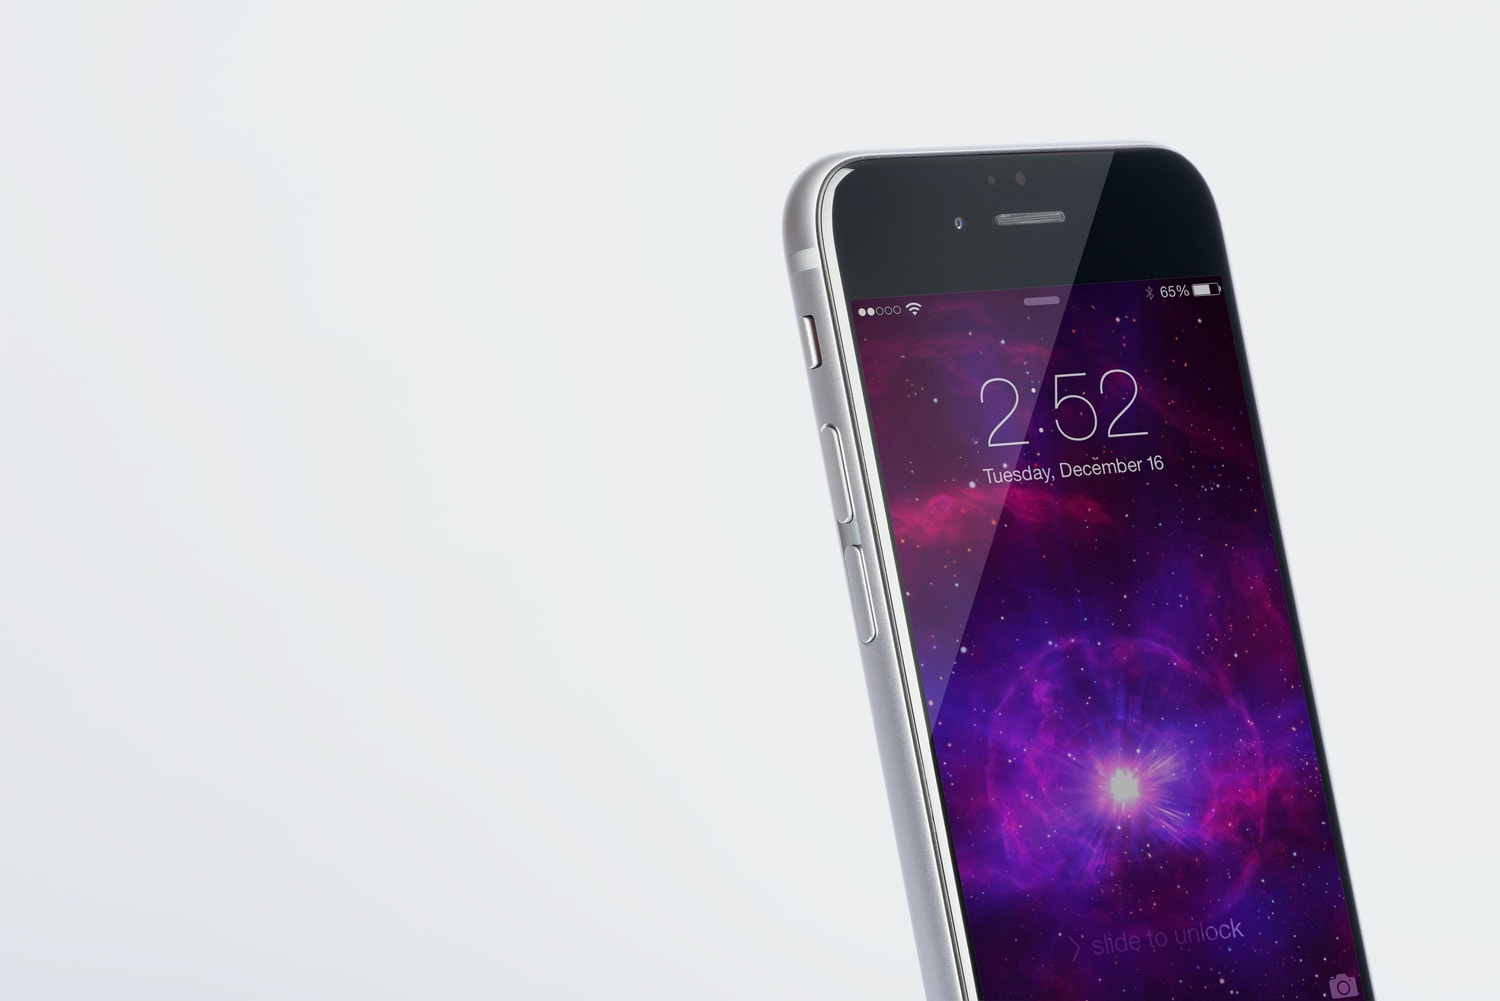 Iphone 6 Spacegray PSD Mockup 04 by Original Mockups on Original Mockups